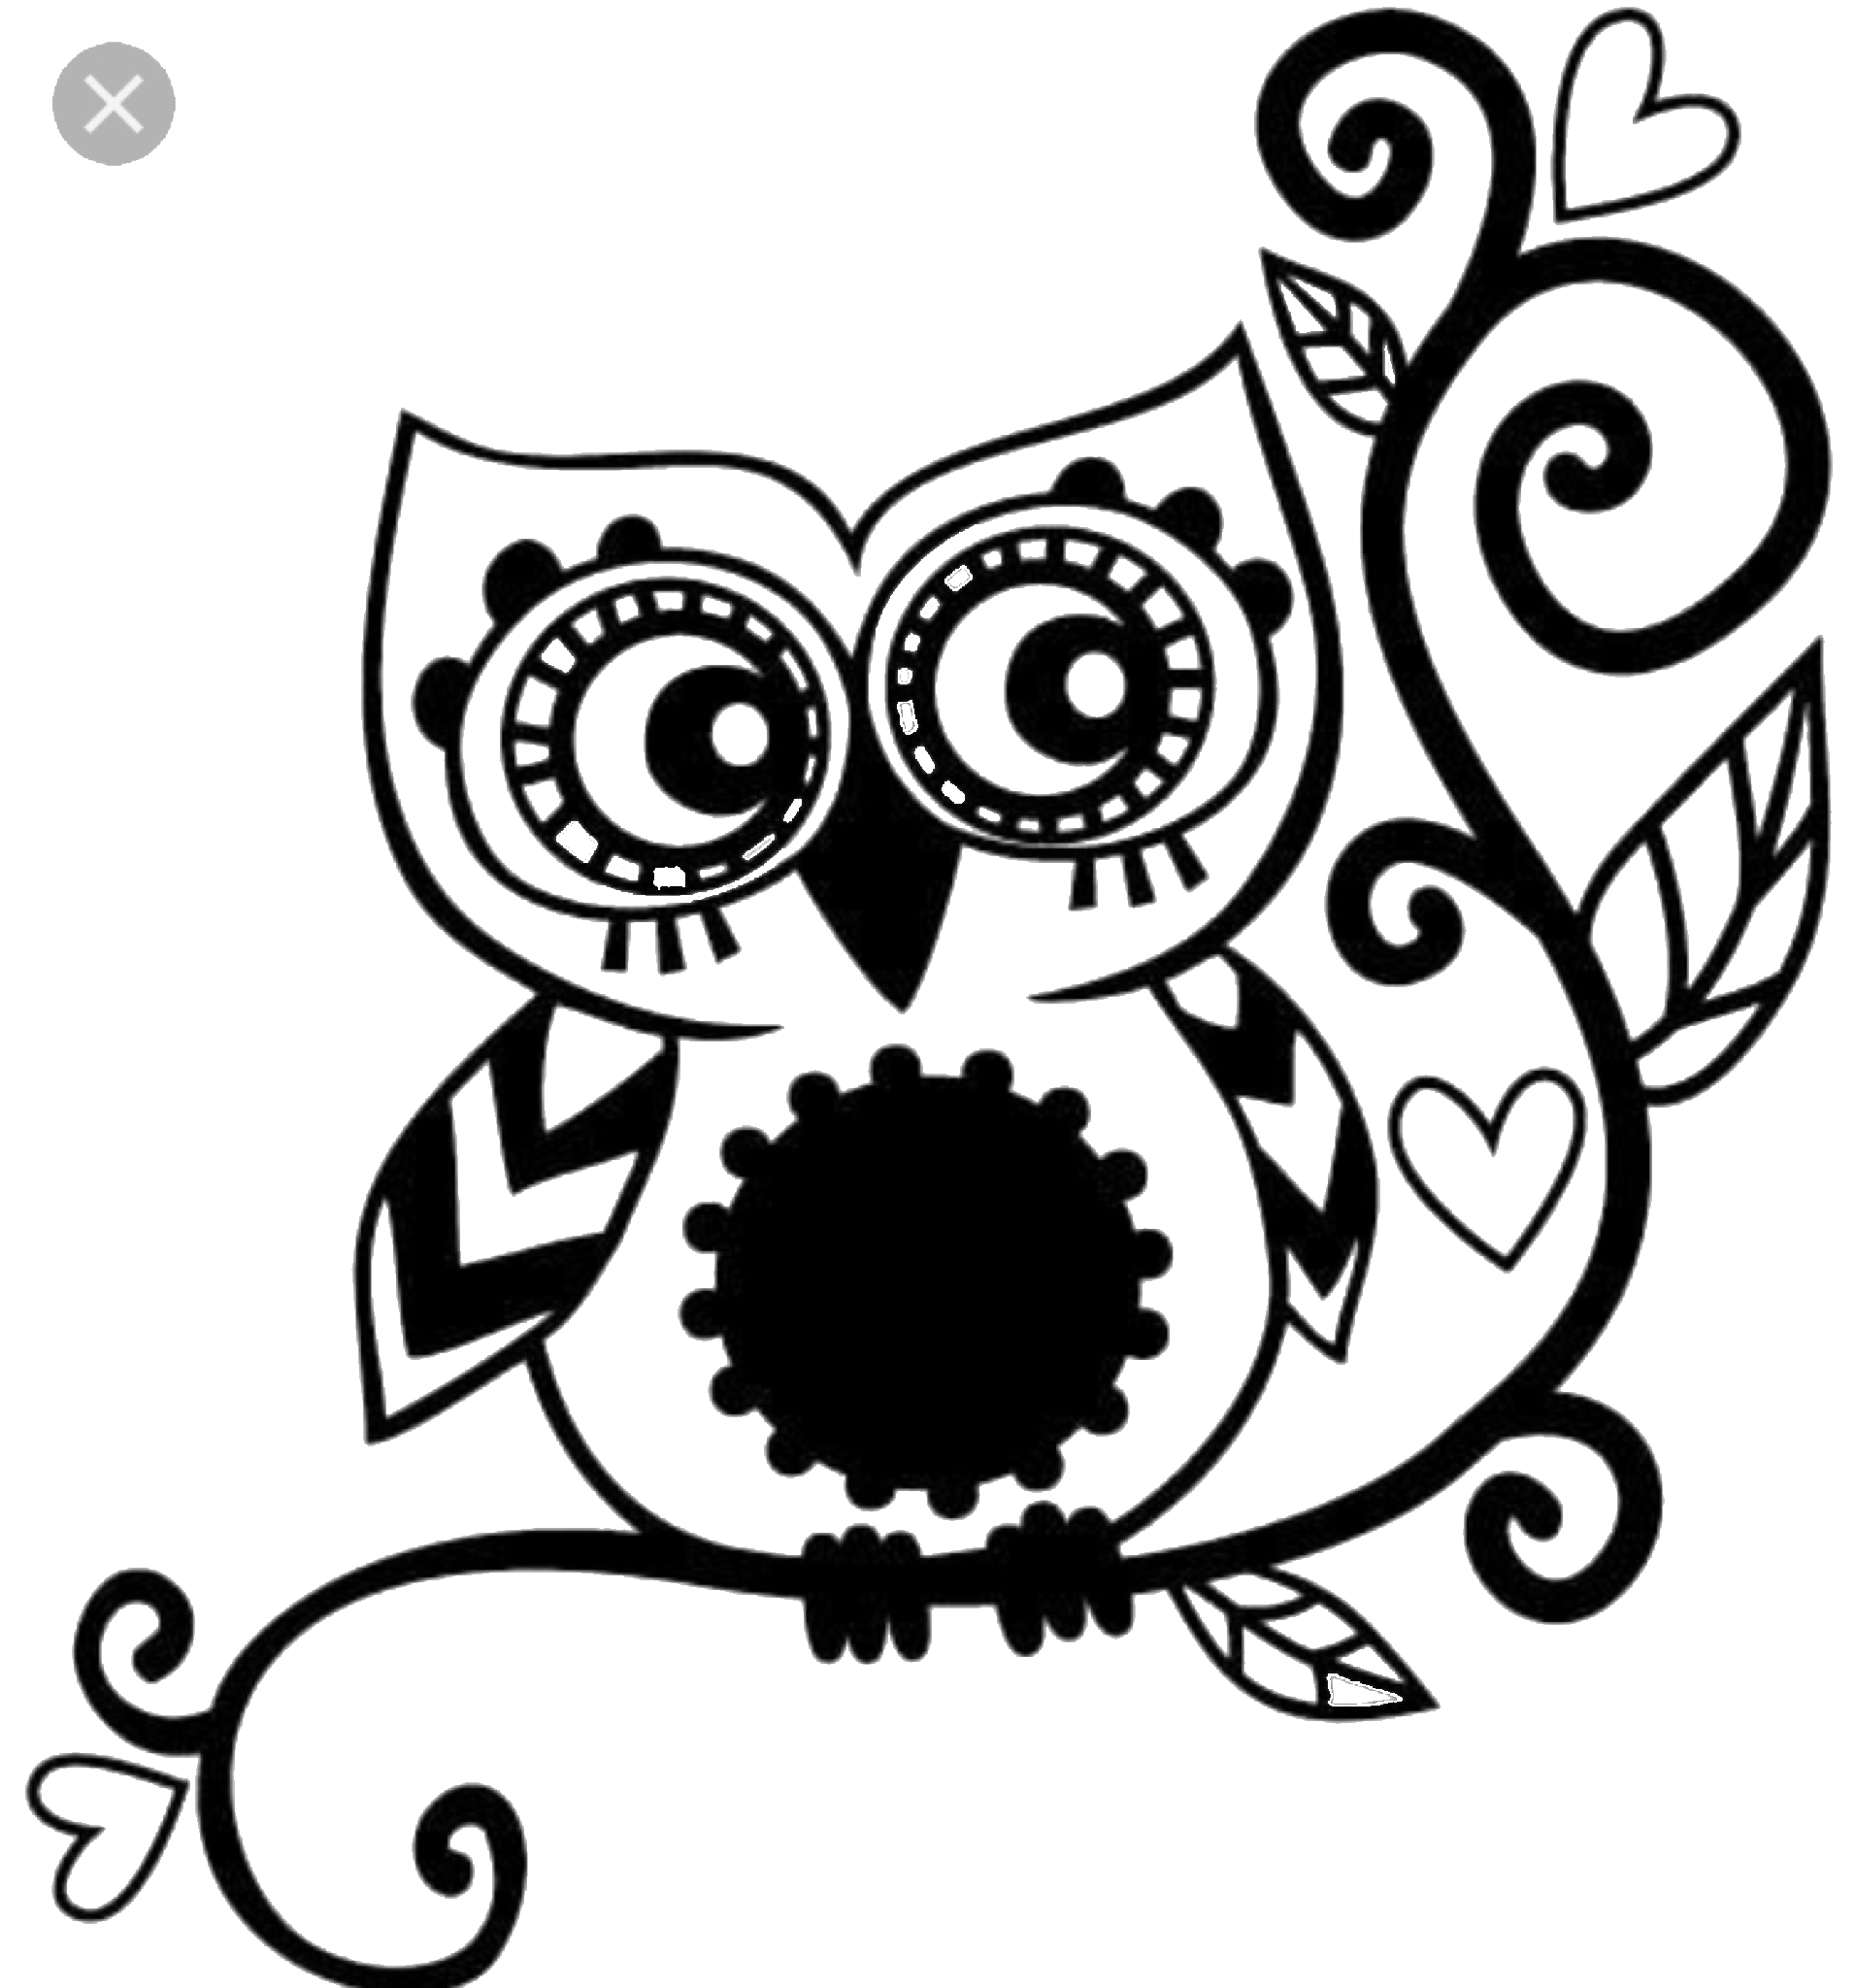 Clipart smart owl colored book graphic freeuse library Owl stencil | Blusas | Pinterest | Cricut, Owl stencil and Stenciling graphic freeuse library